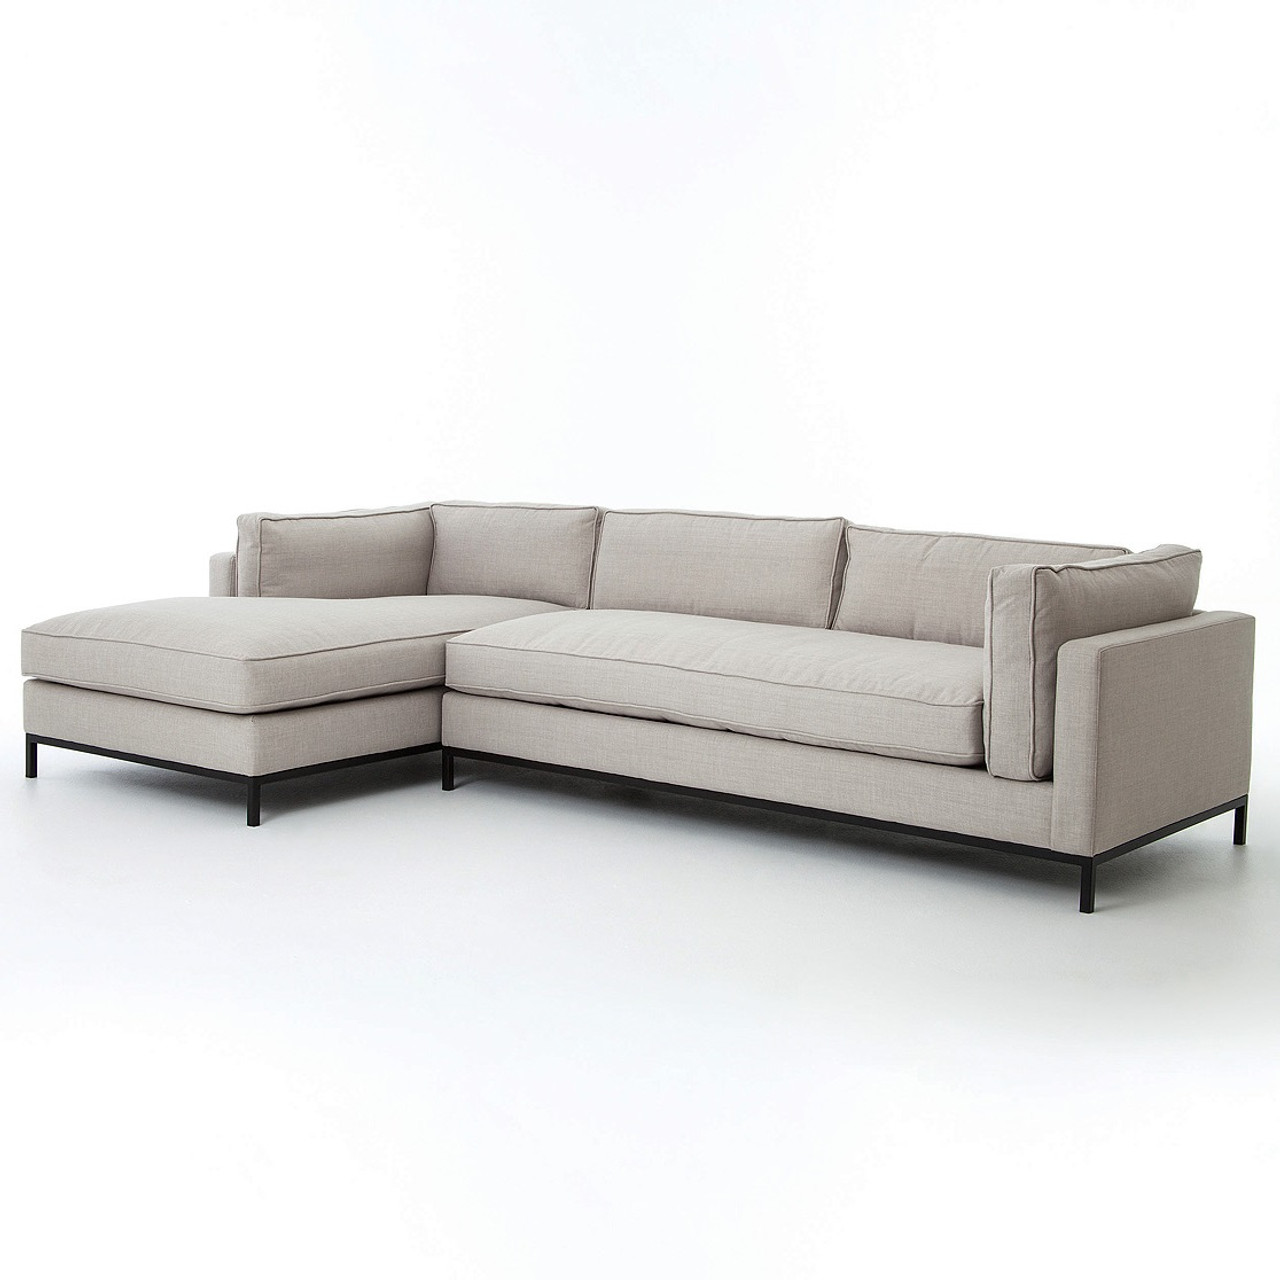 2 piece sectional ashley furniture patola park patina for 2 pc sectional with chaise